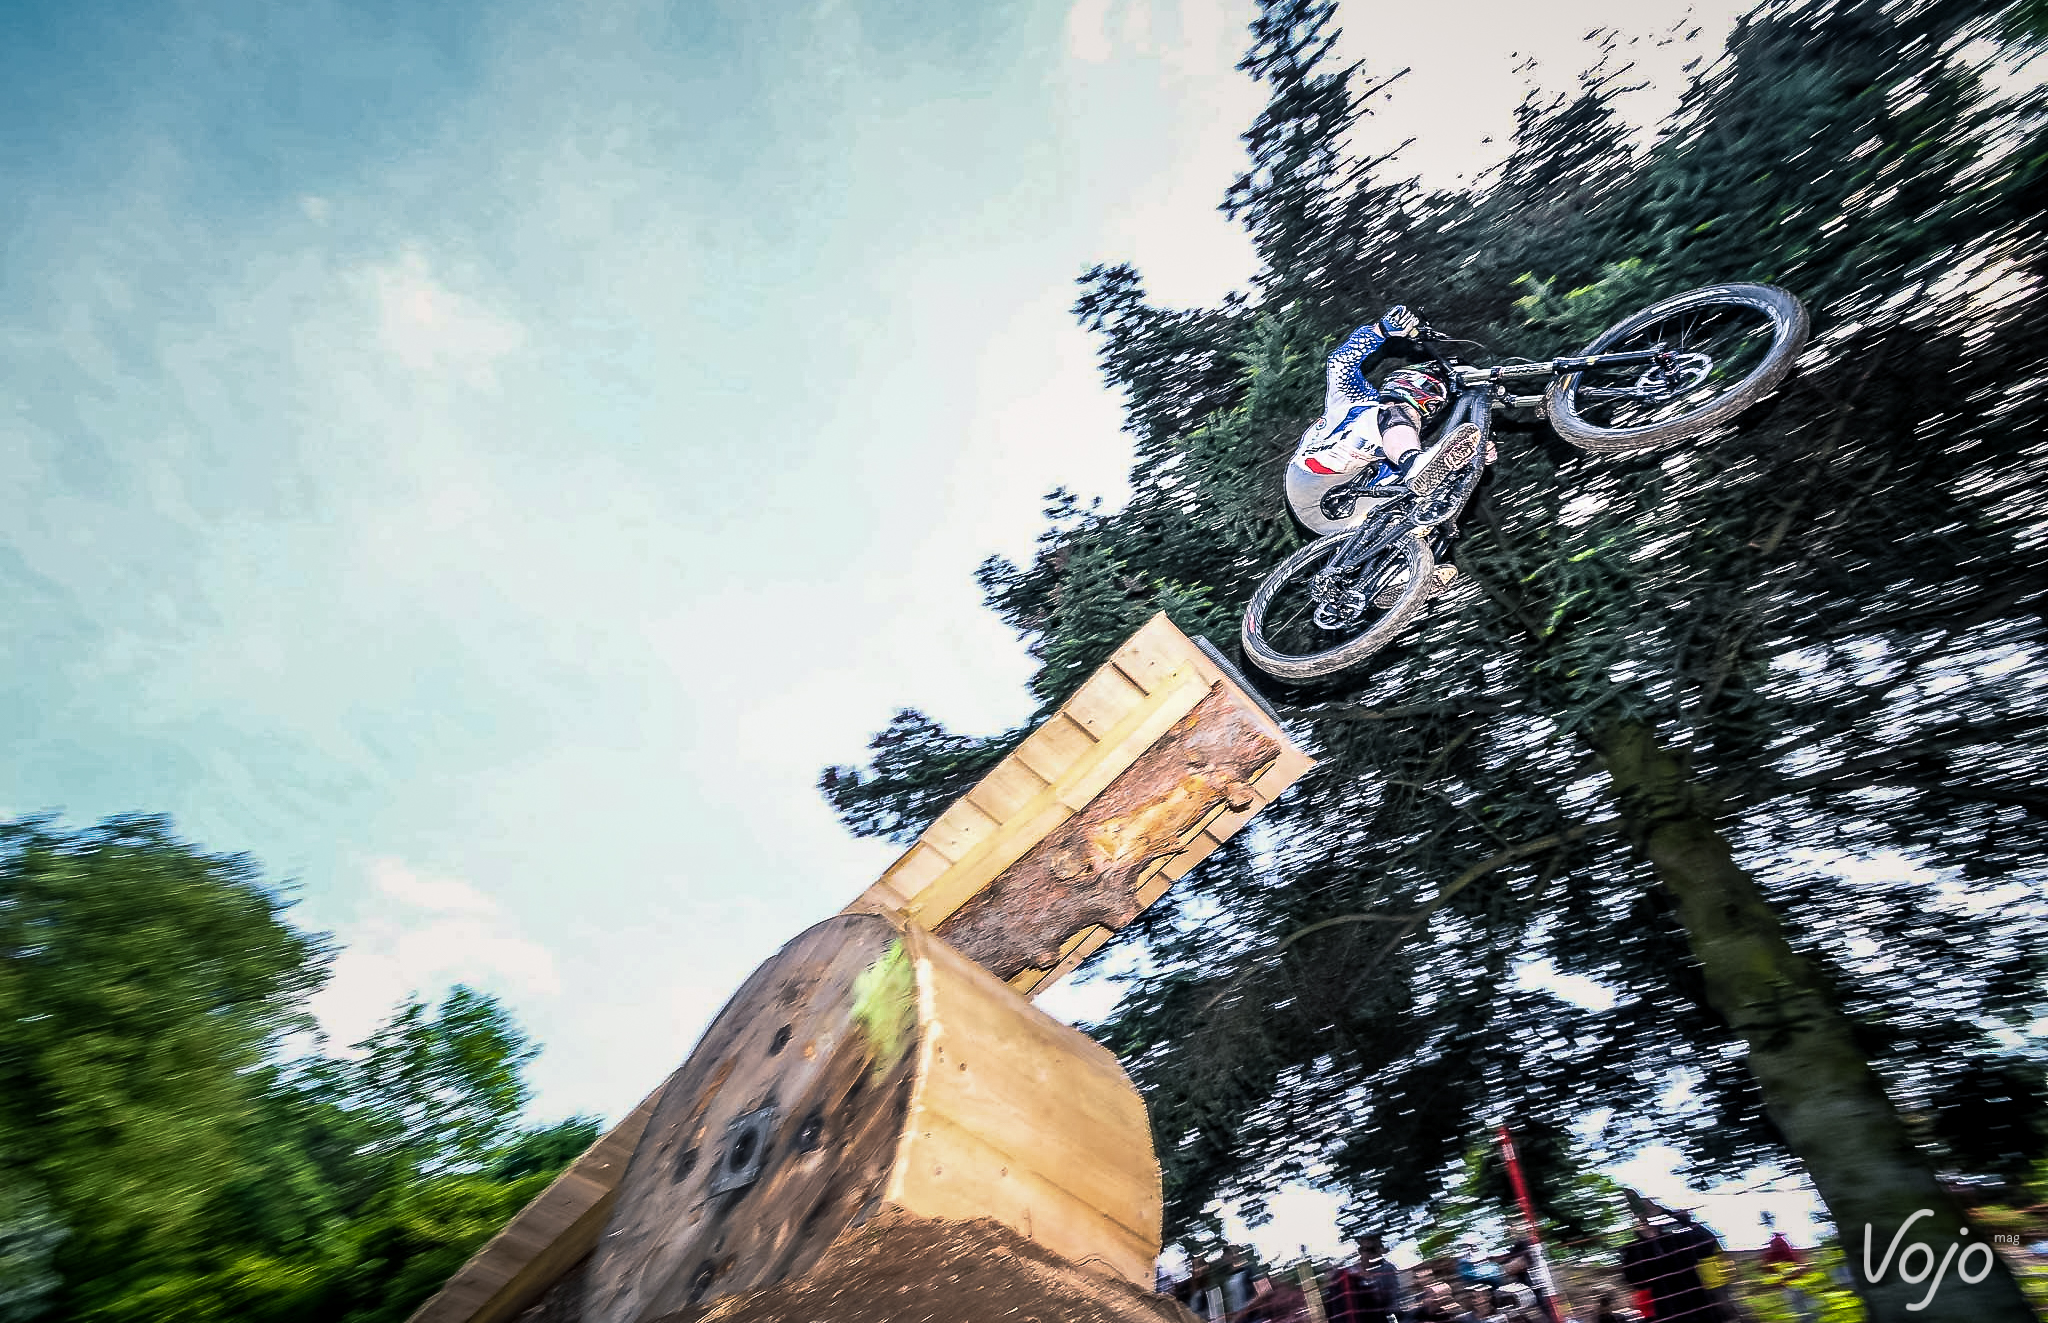 Coupe-France-DH_Lyon_LaSarra-copyright-Romain-Laurent-VojoMag-23